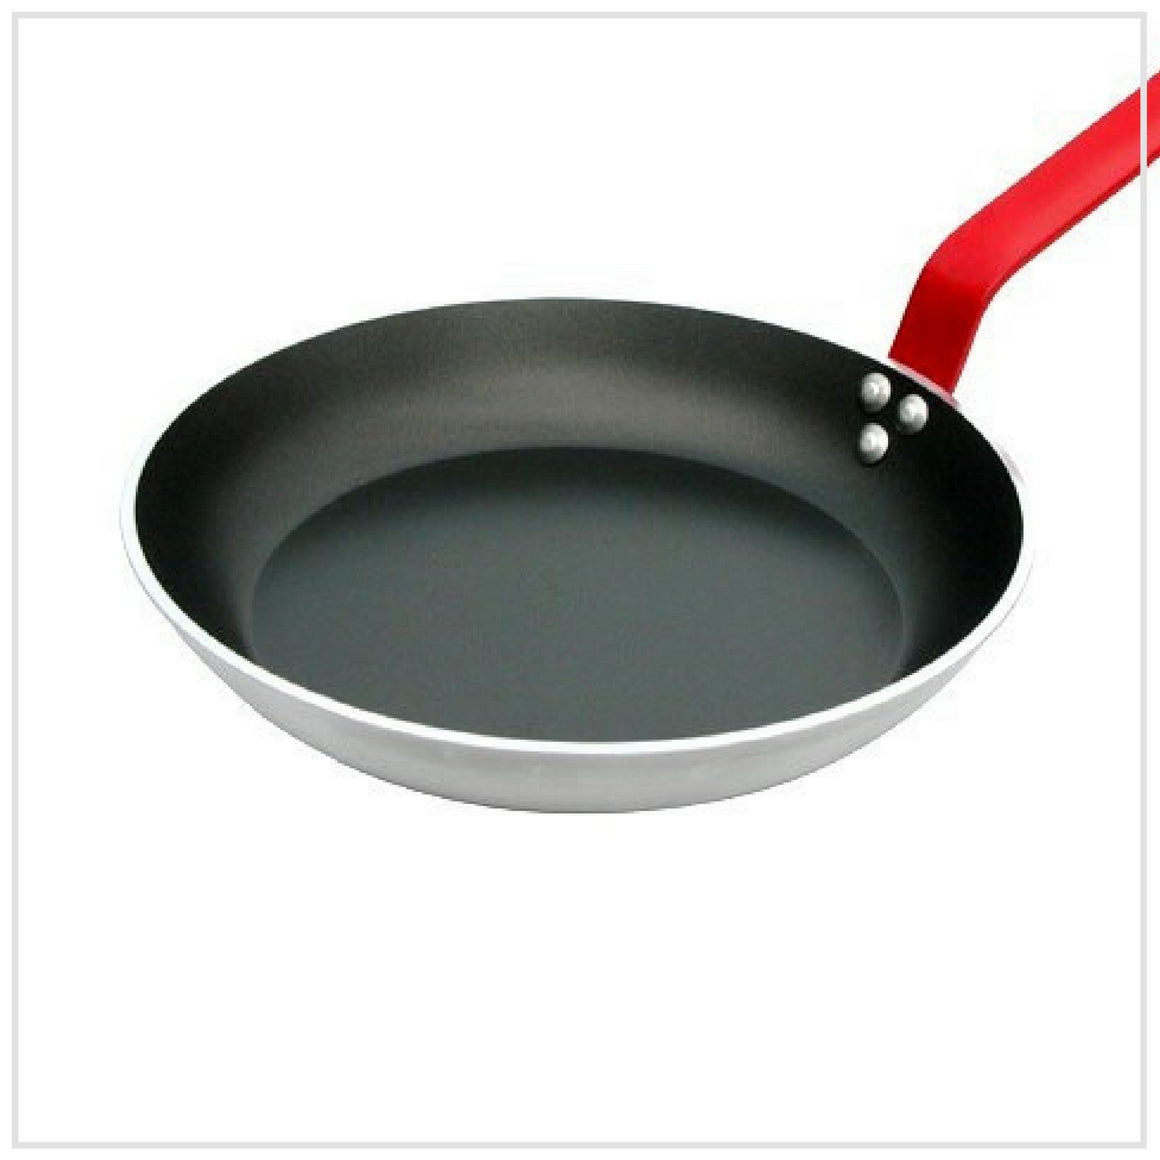 De Buyer Non Stick Frying Pan 28cm RED Handle